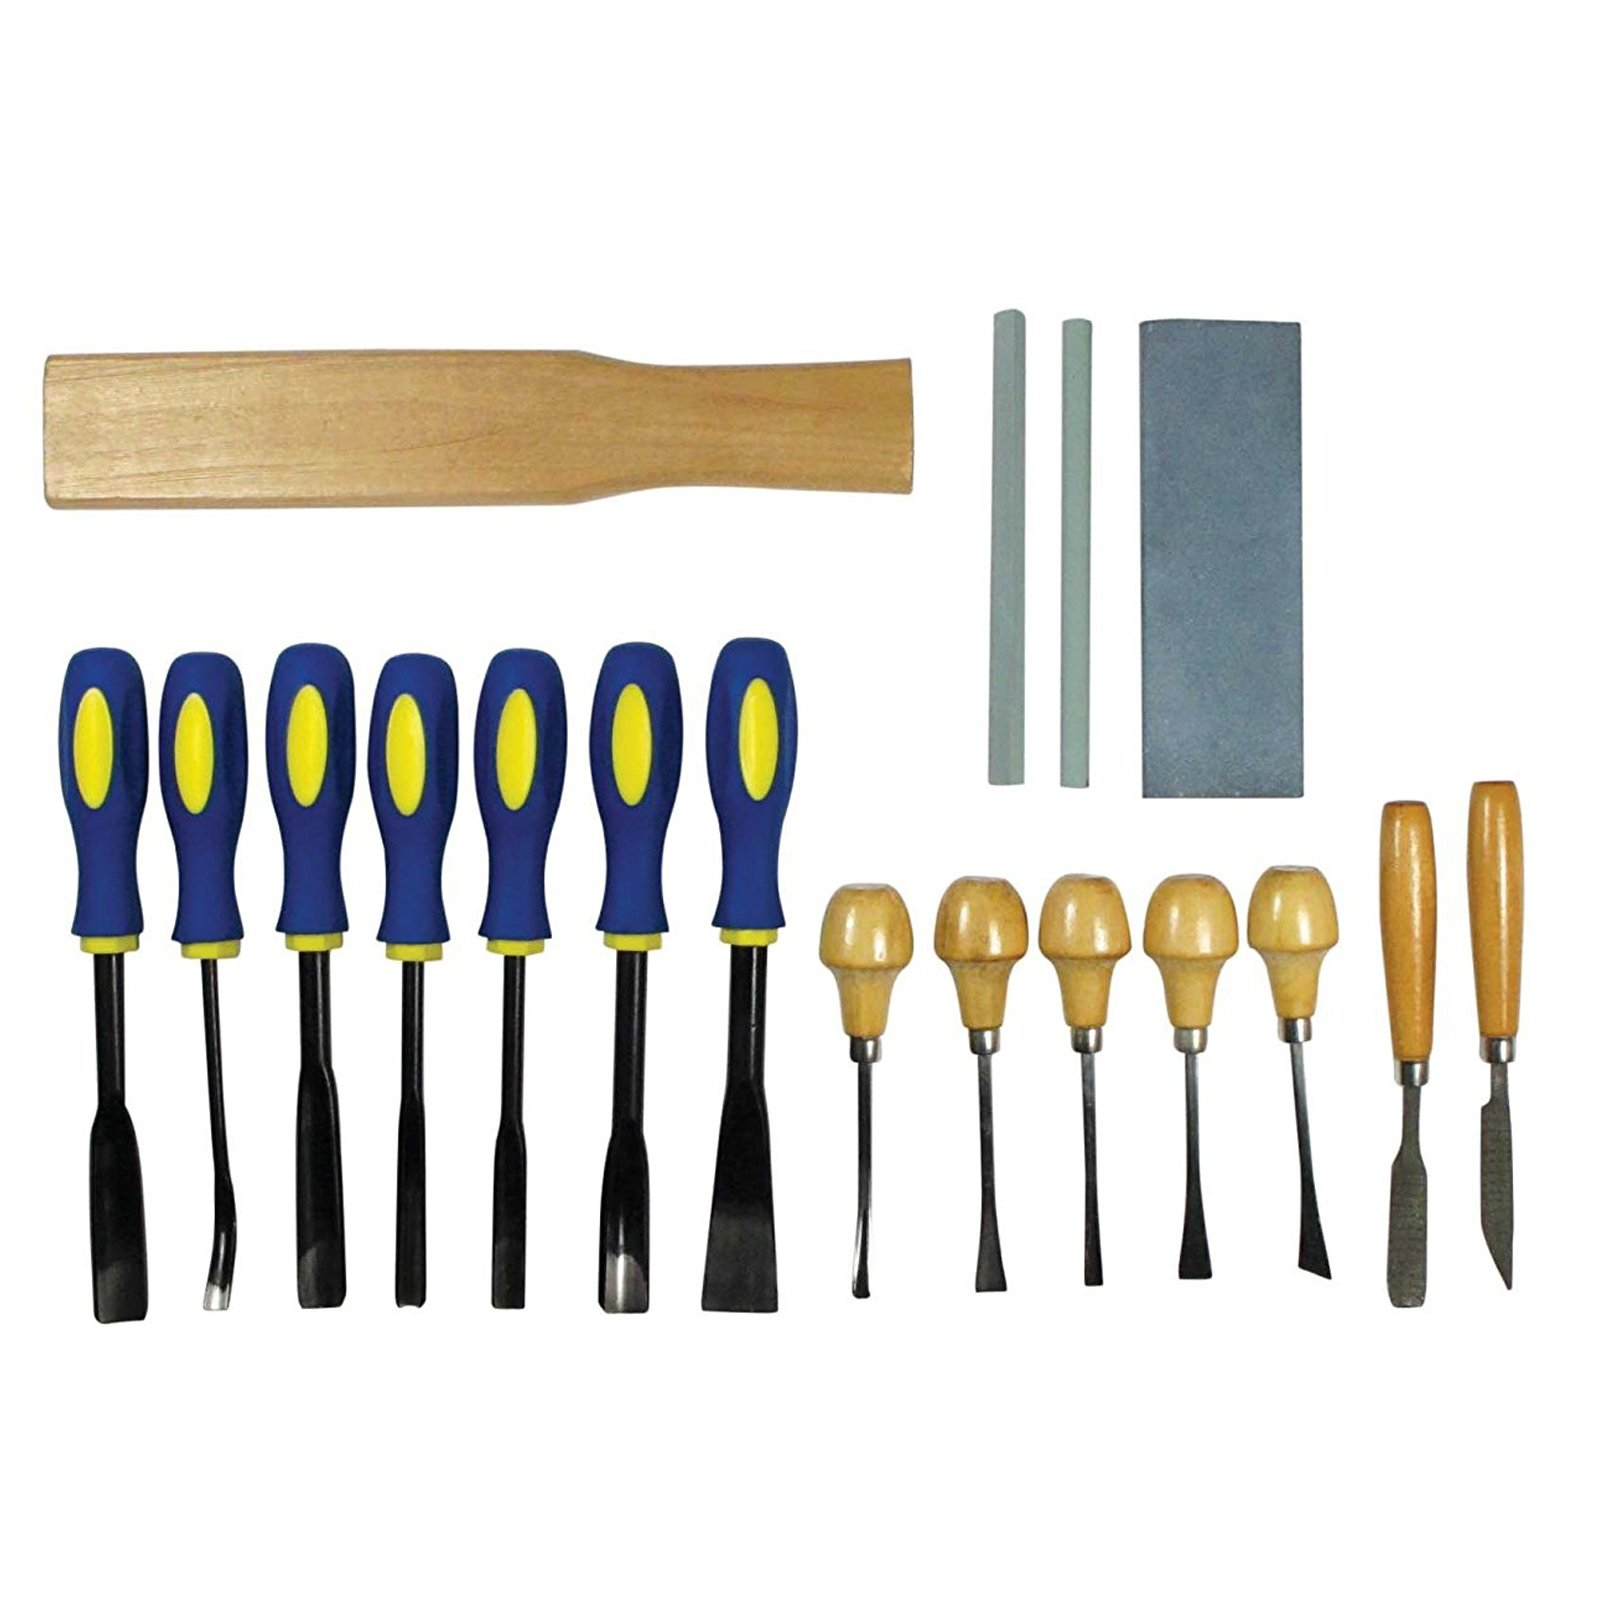 Universal Tool Wood Carving Chisel Set Woodworking Supplies (2 Sizes)